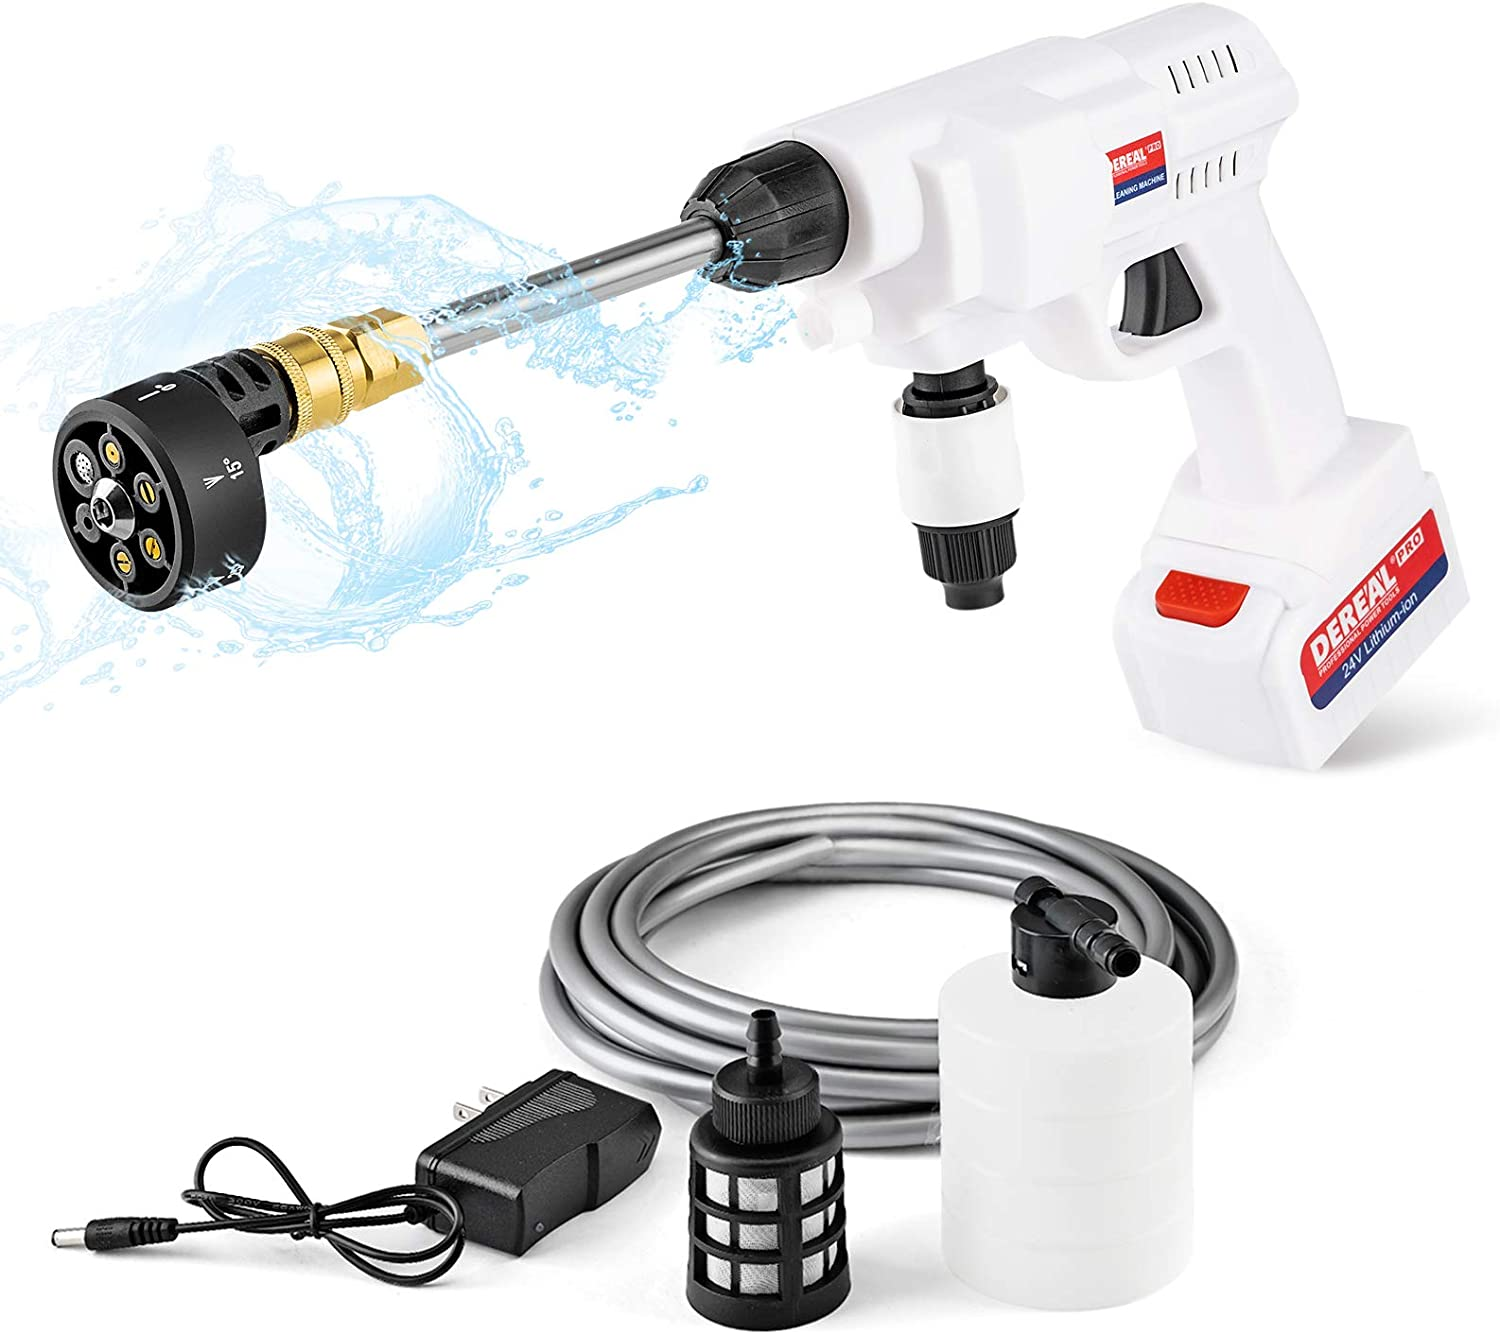 DEREAL Pro Pressure-Washer-Cleaner 24V Battery Fashionable Max 59% OFF Power-Portable Hi